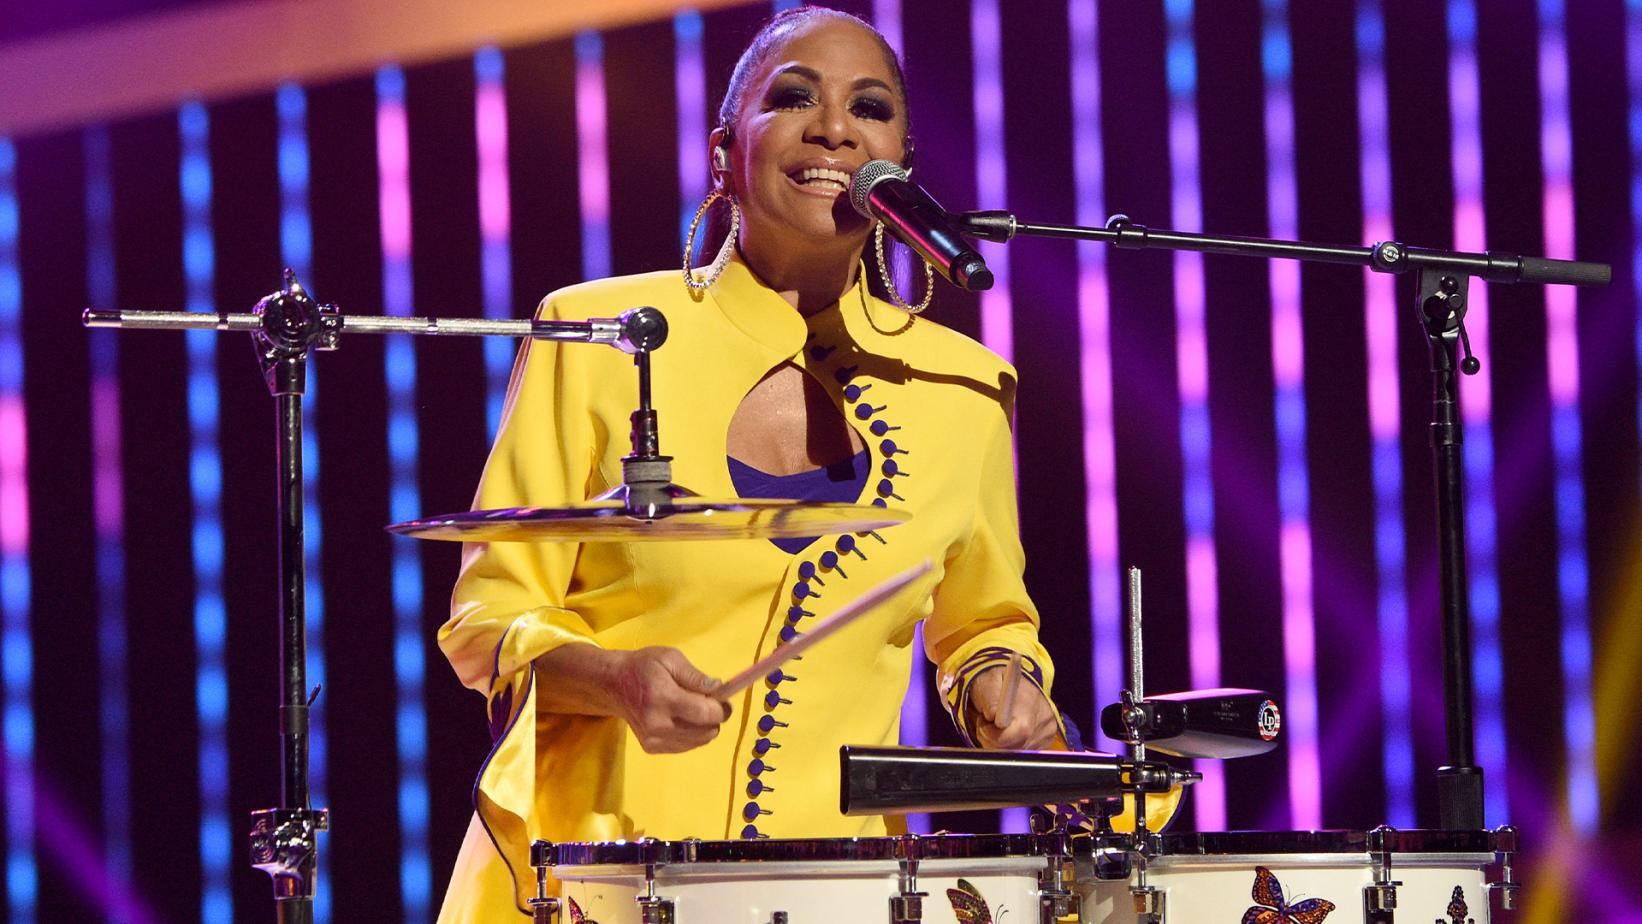 Sheila E. smiling while playing the drums and singing